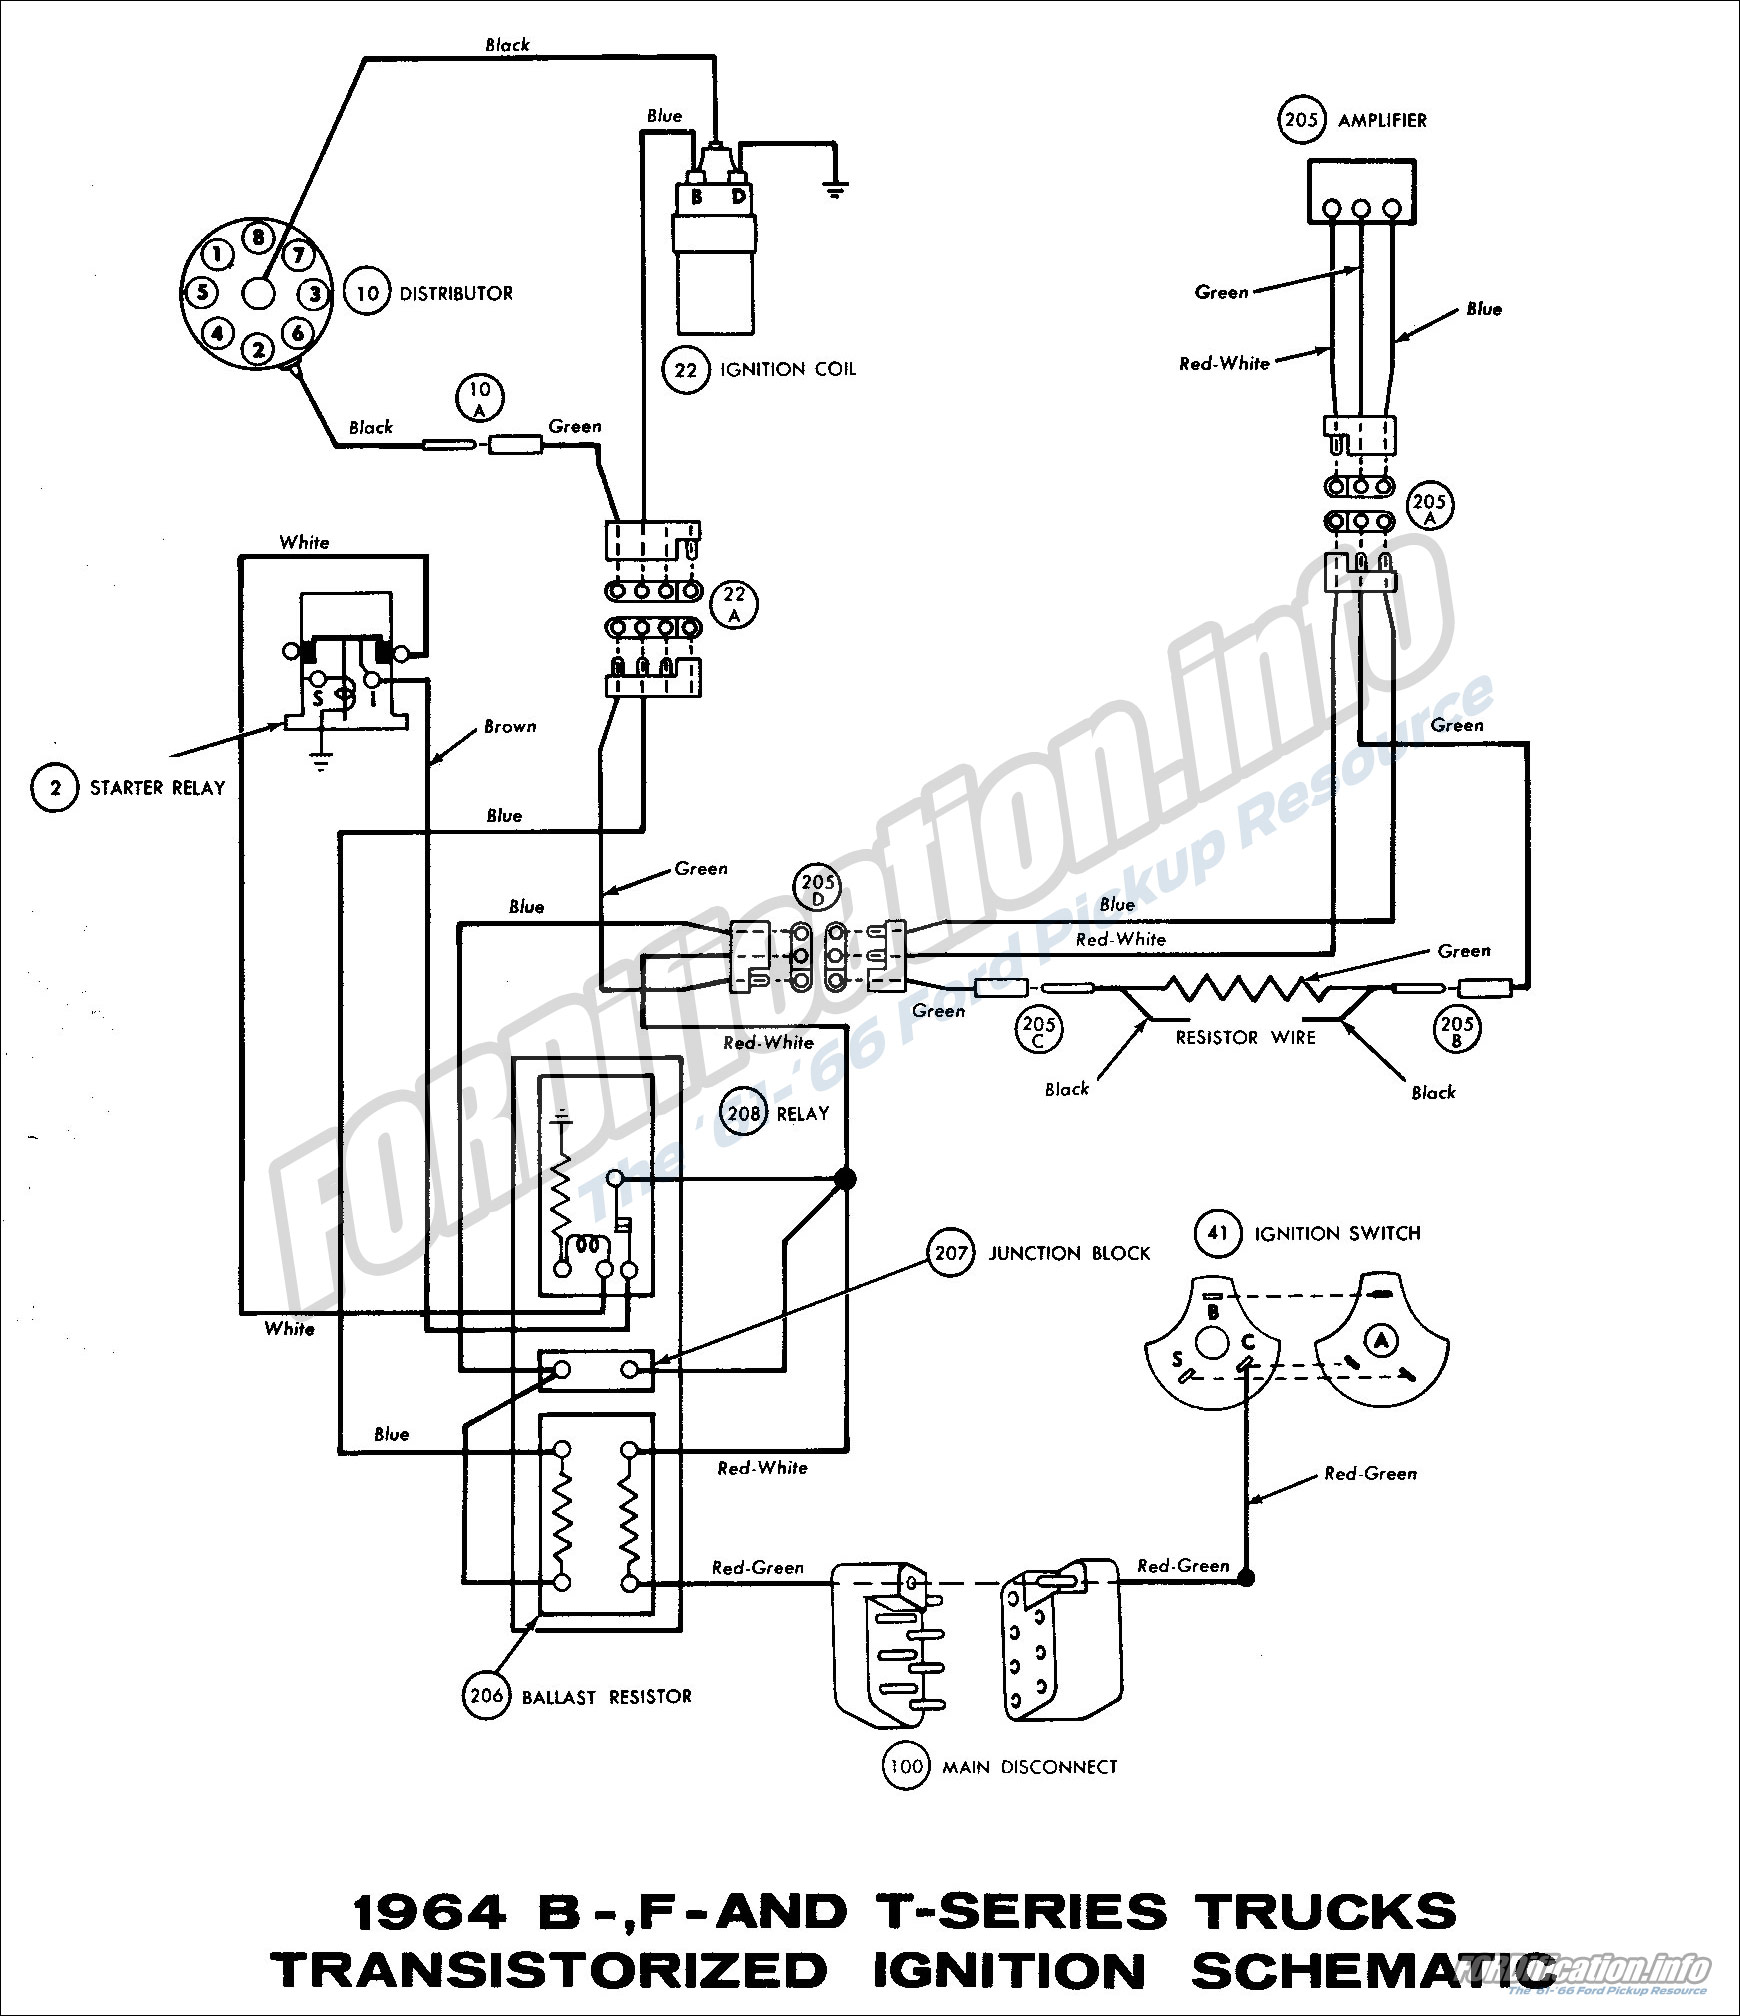 1964 Ford Truck Wiring Diagrams The 61 66 Diagram B F And T Series Trucks Transistorized Ignition Schematic